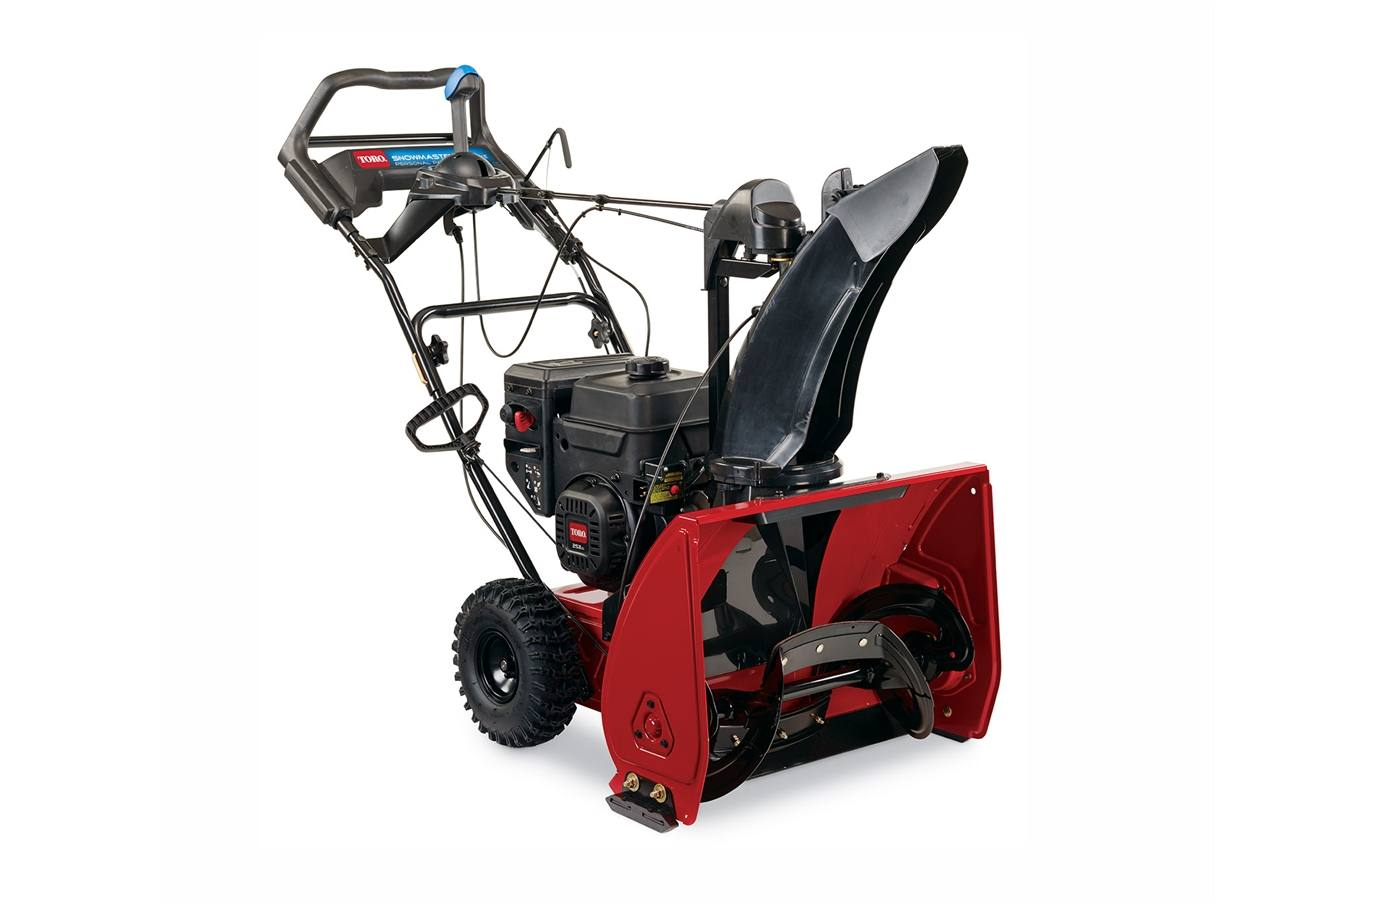 Used Snow Blowers Toro Snow Equipment Powerhouse Outdoor Equipment